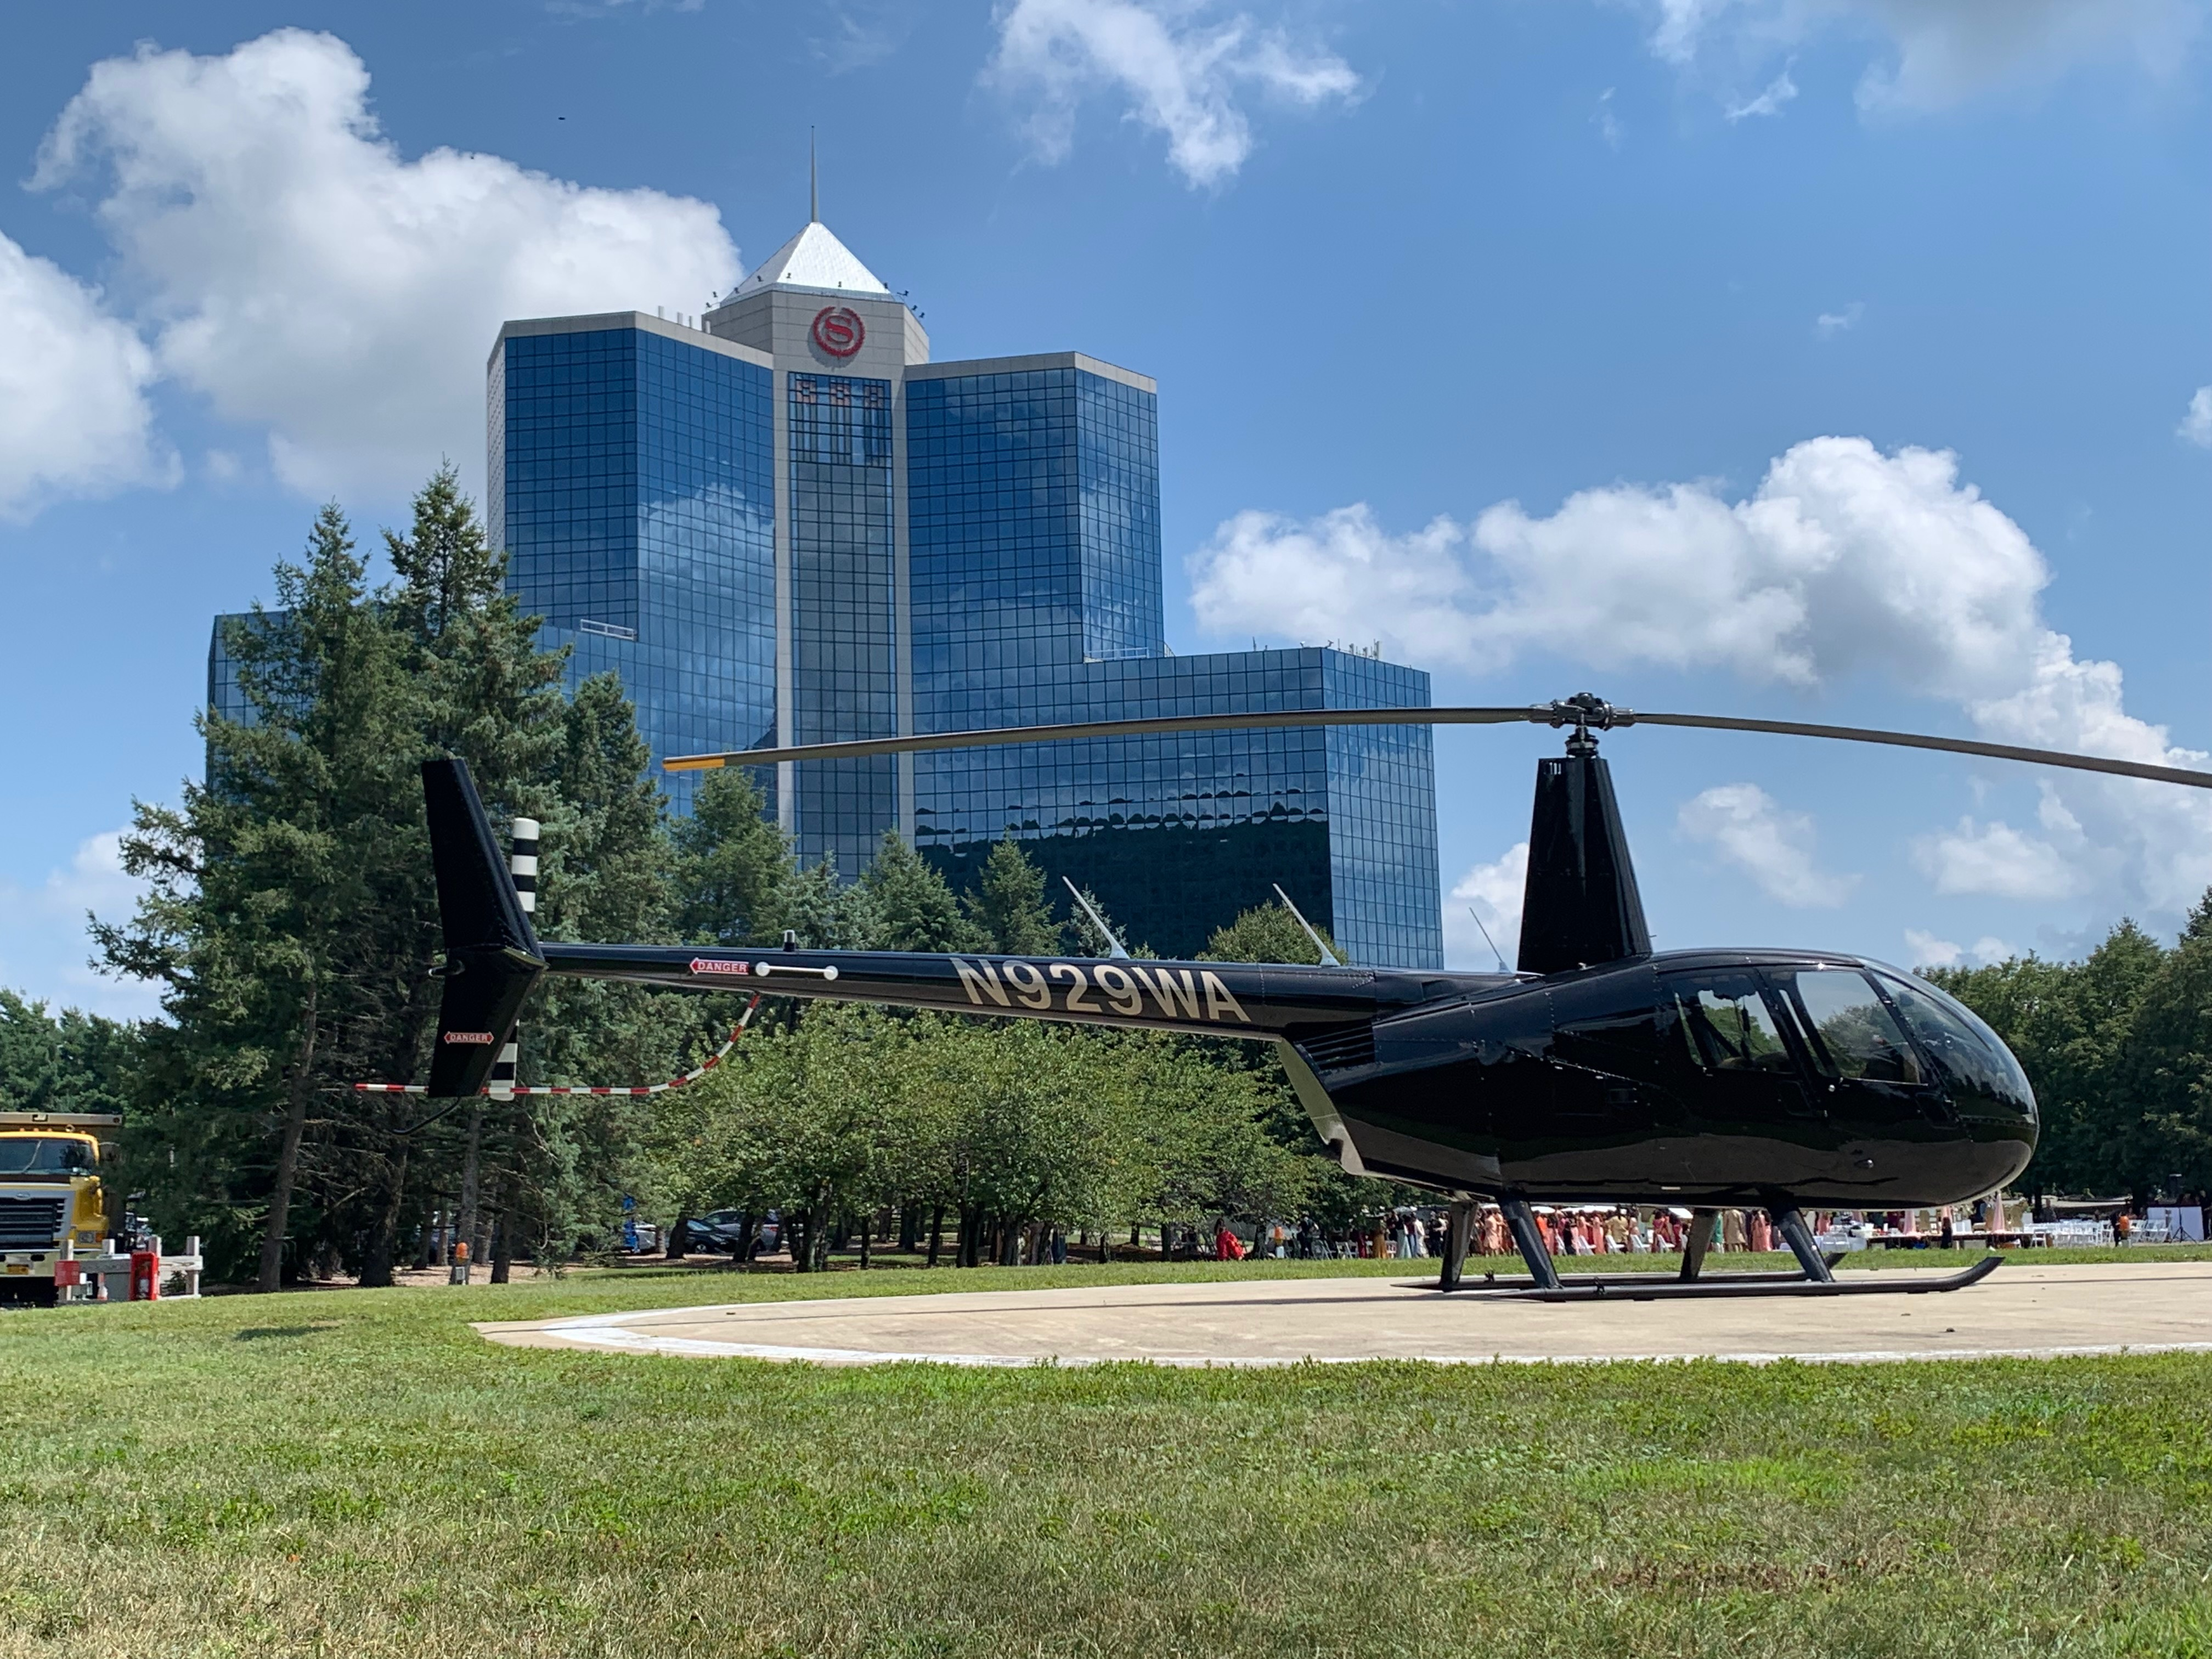 black r44 helicopter in front of the sheraton mahwah hotel